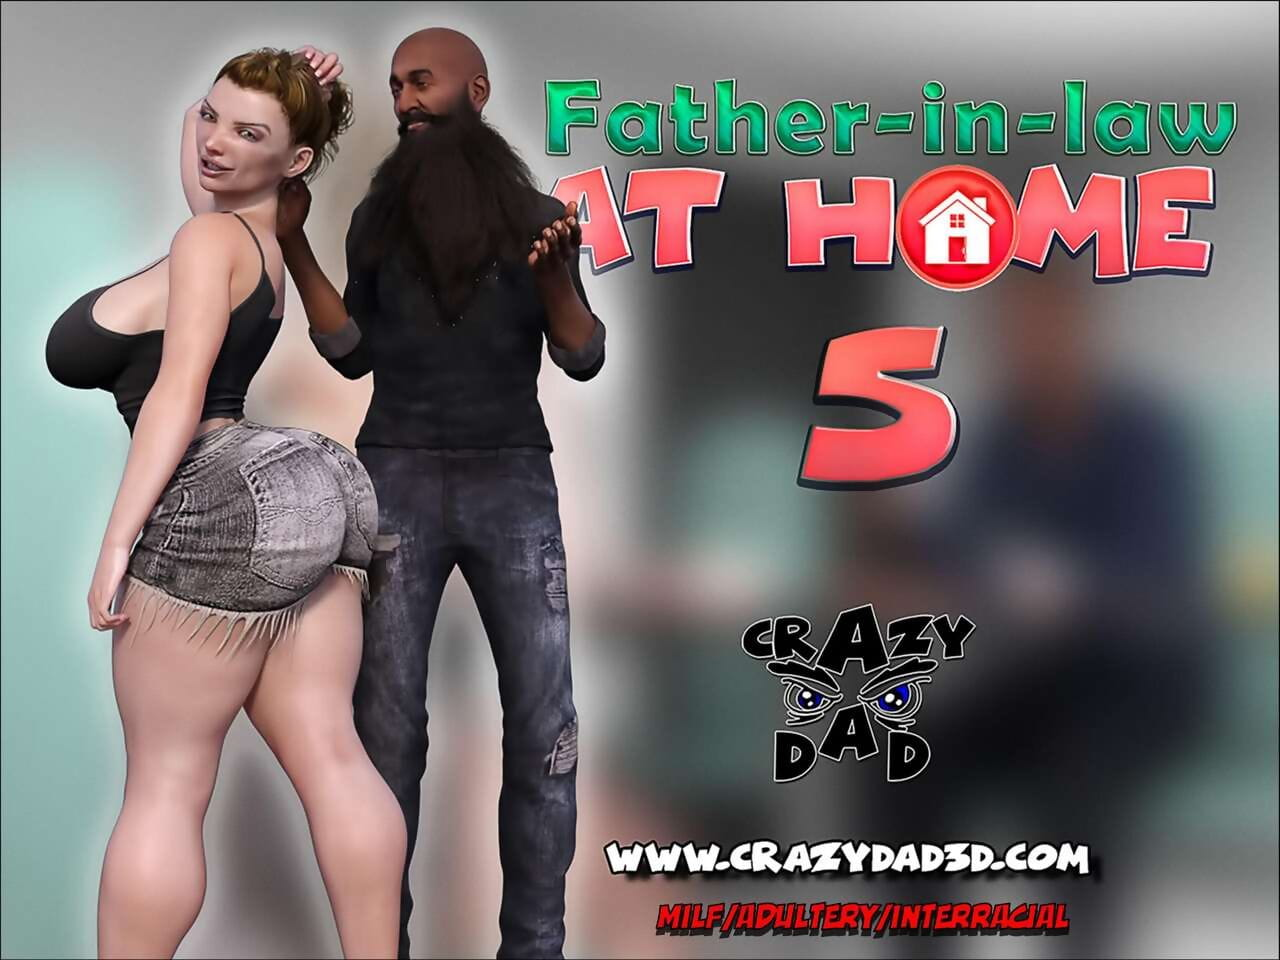 CrazyDad Father-in-Law within reach Accommodation billet 5